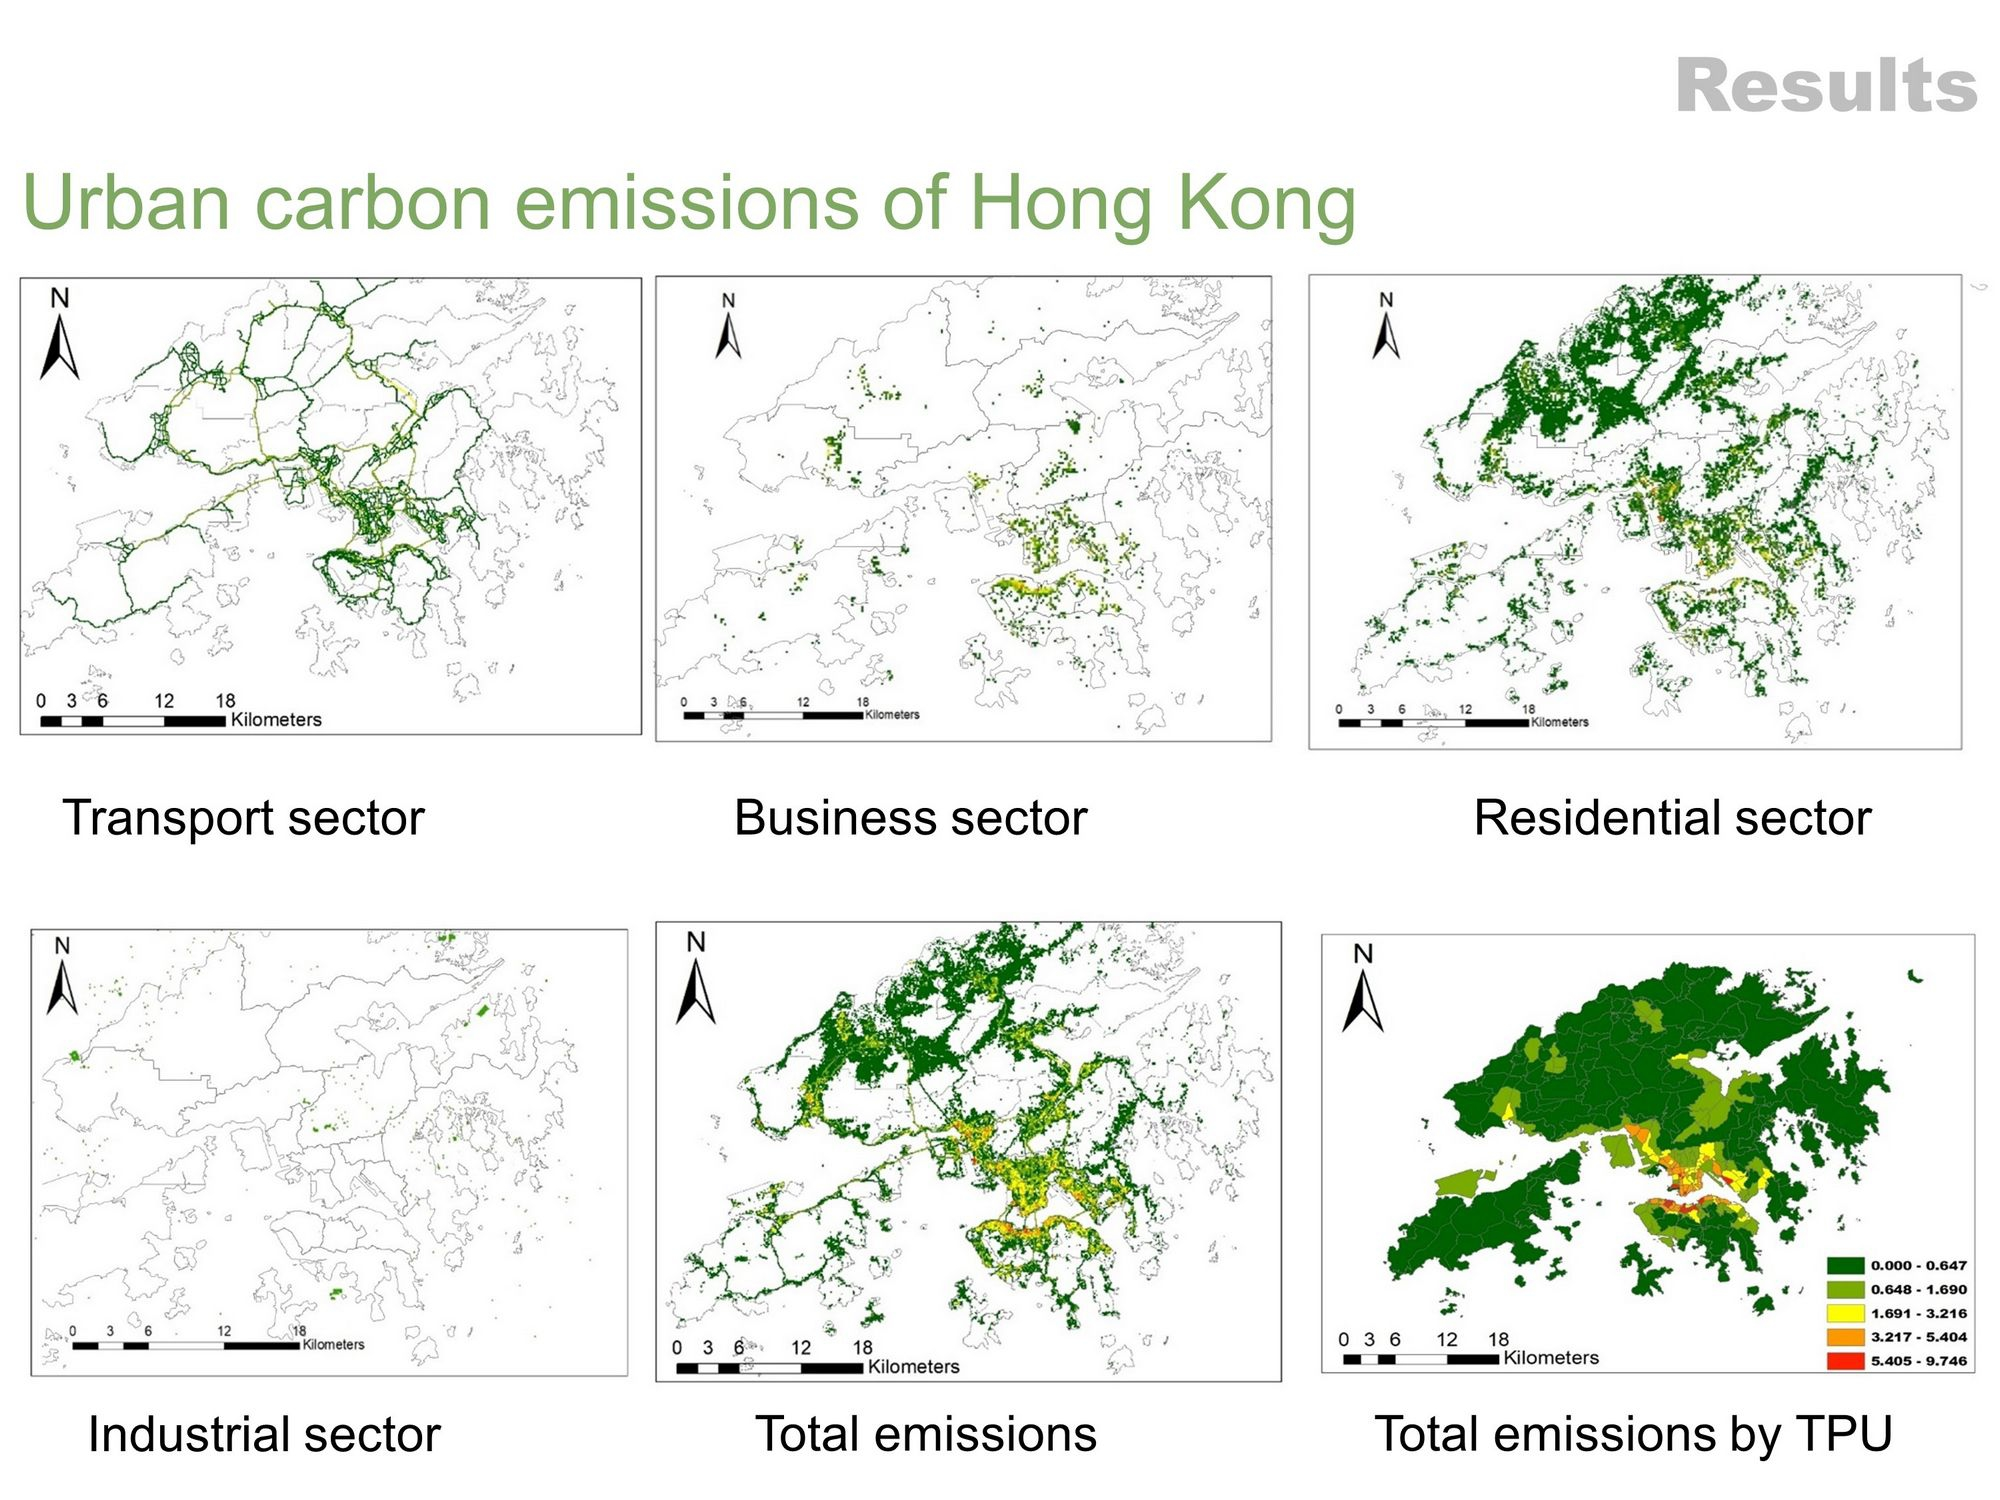 CAI Meng, a PhD student of the School of Architecture develops a hybrid method to model urban carbon emission inventory at fine resolution using open urban data.